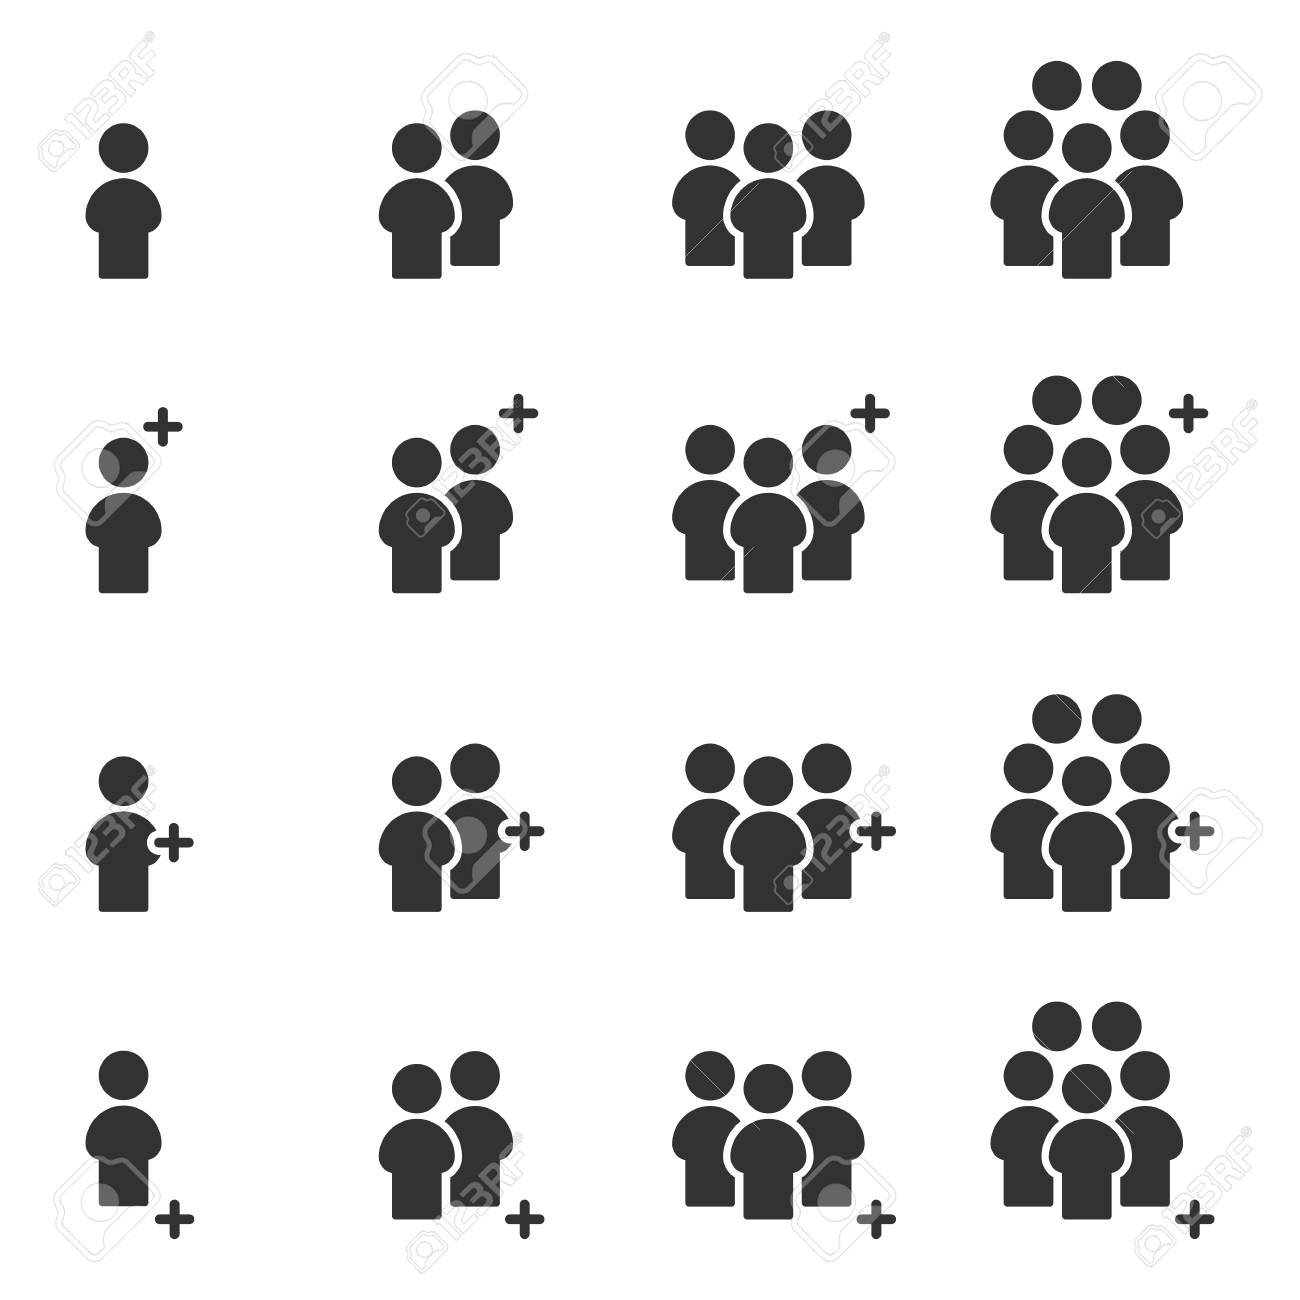 People Icons work group Team Vector - 123312503